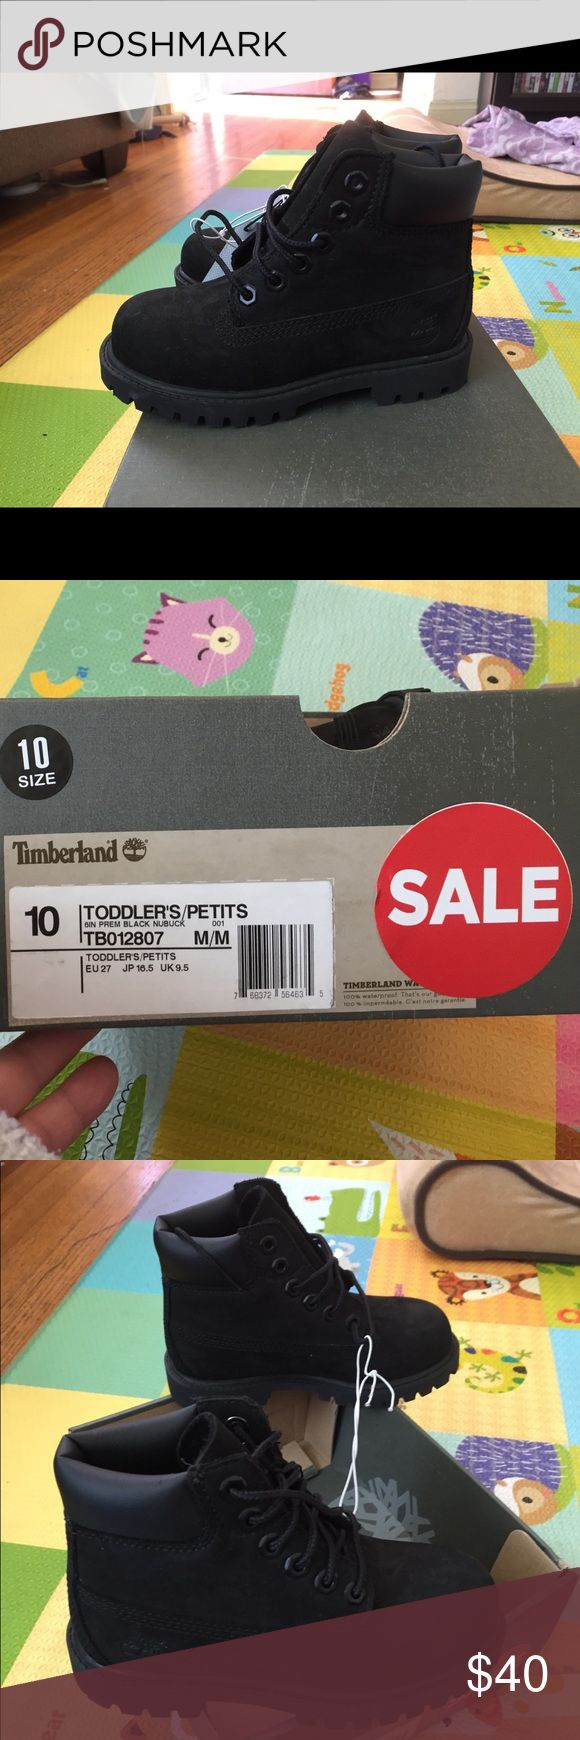 Toddler timberland boots size 10 Toddler timberland boots never worn. Box is a bit messed up. Shoes have regular marks from suede material Timberland Shoes Boots